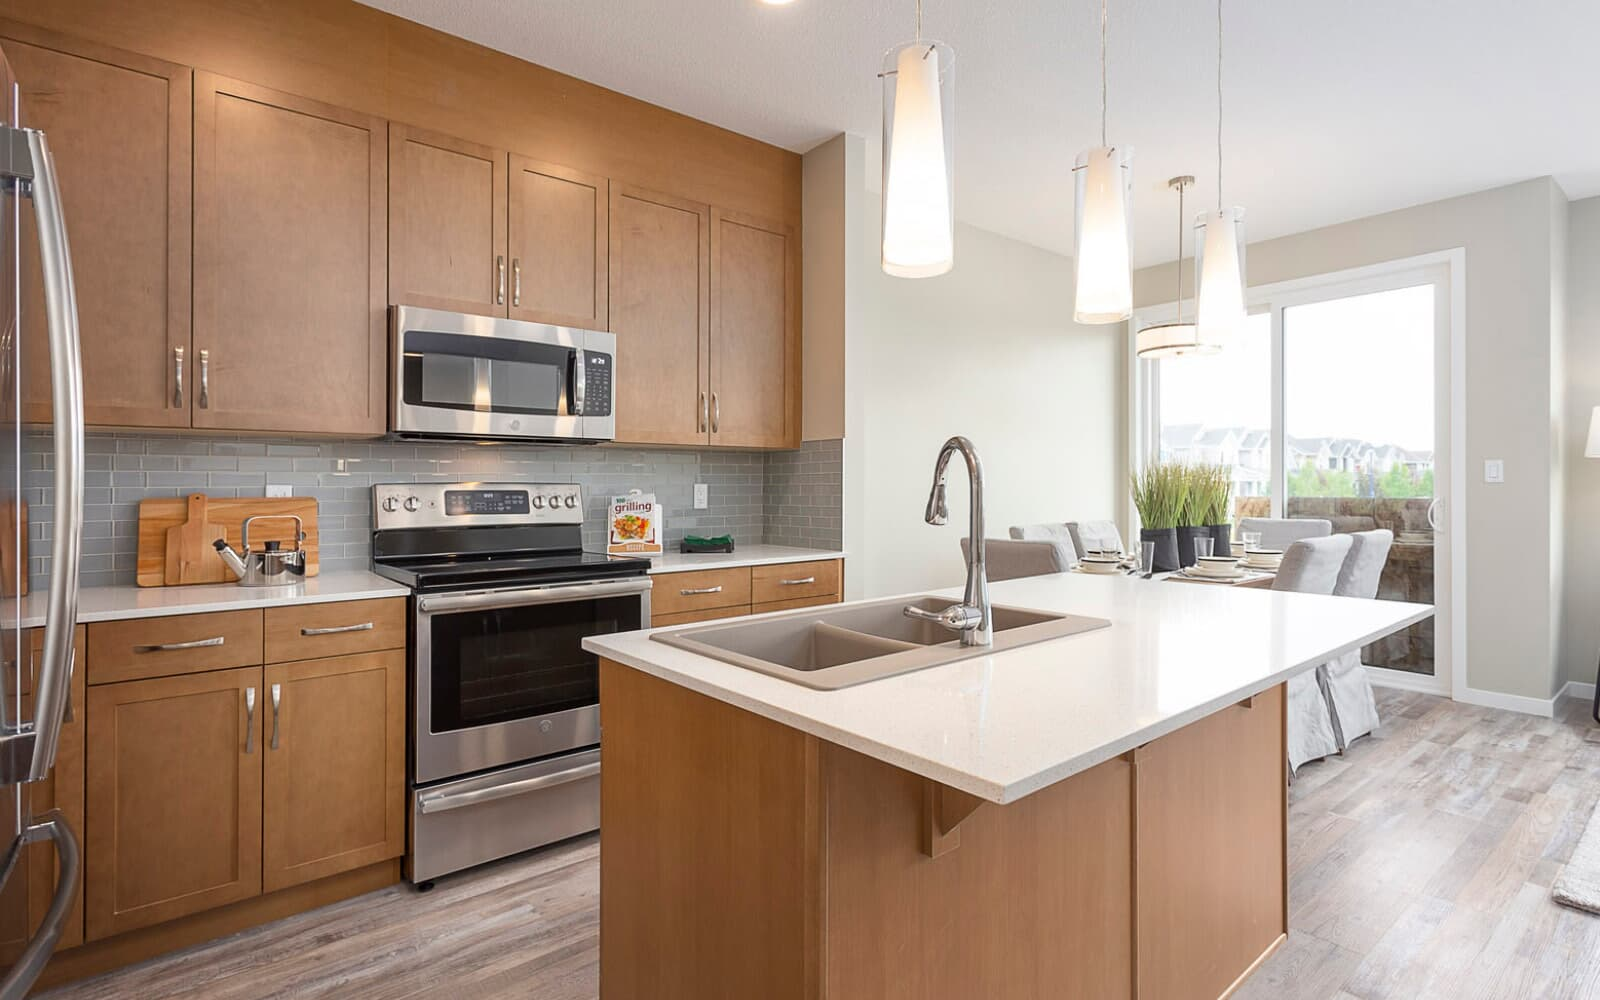 Kitchen view of a Brookfield Residential duplex in The Orchards, Edmonton, Alberta.